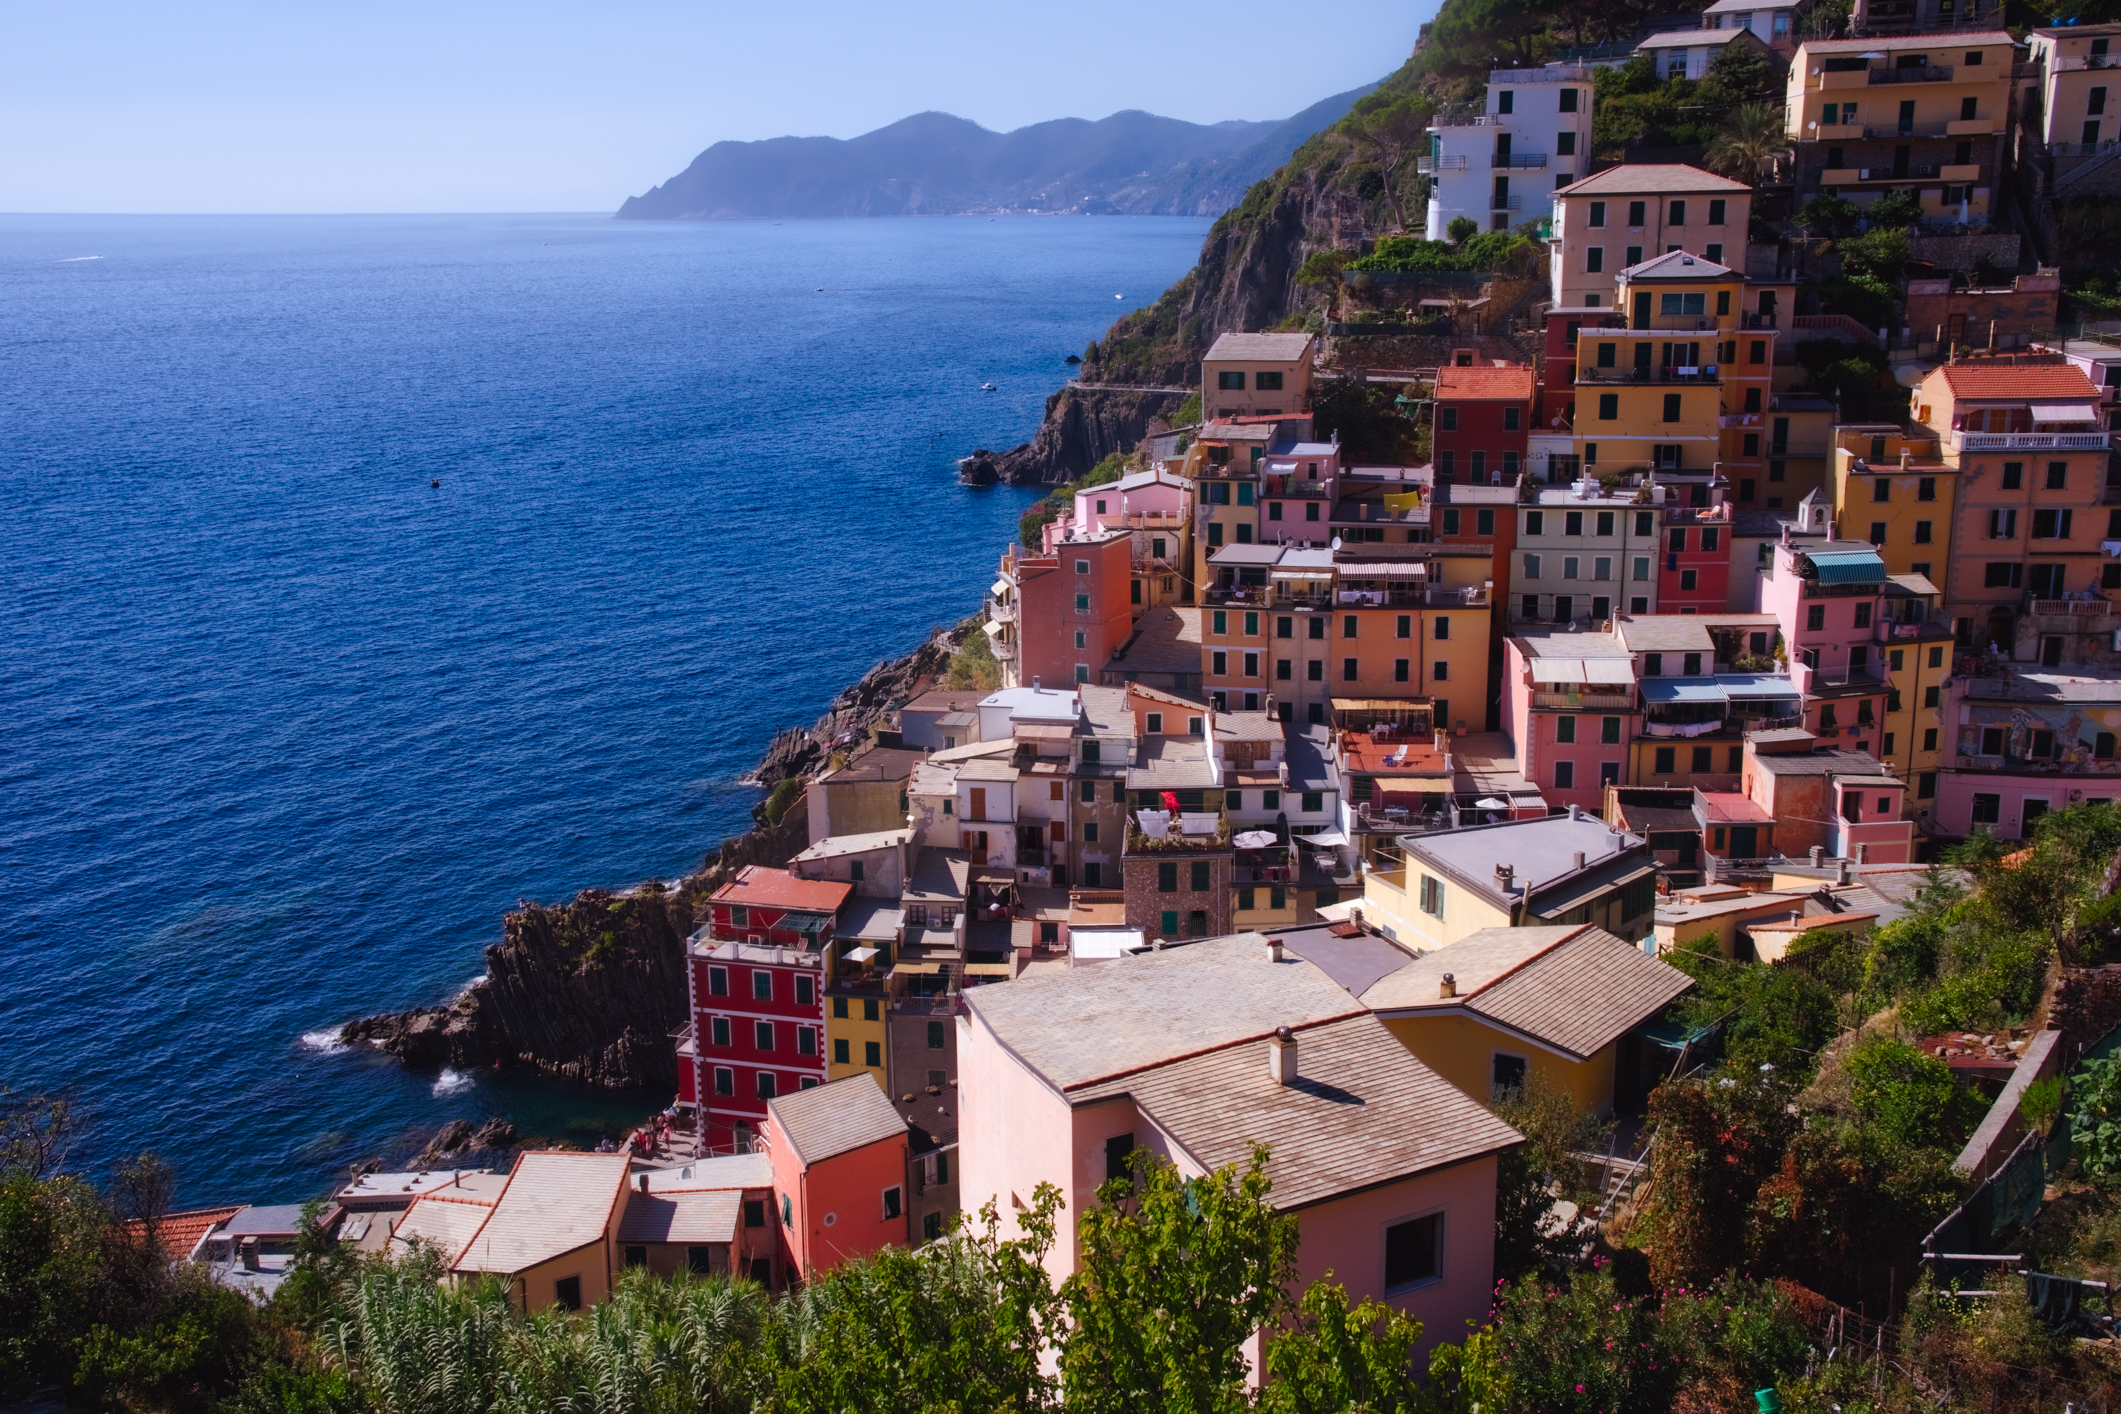 The view from above Riomaggiore